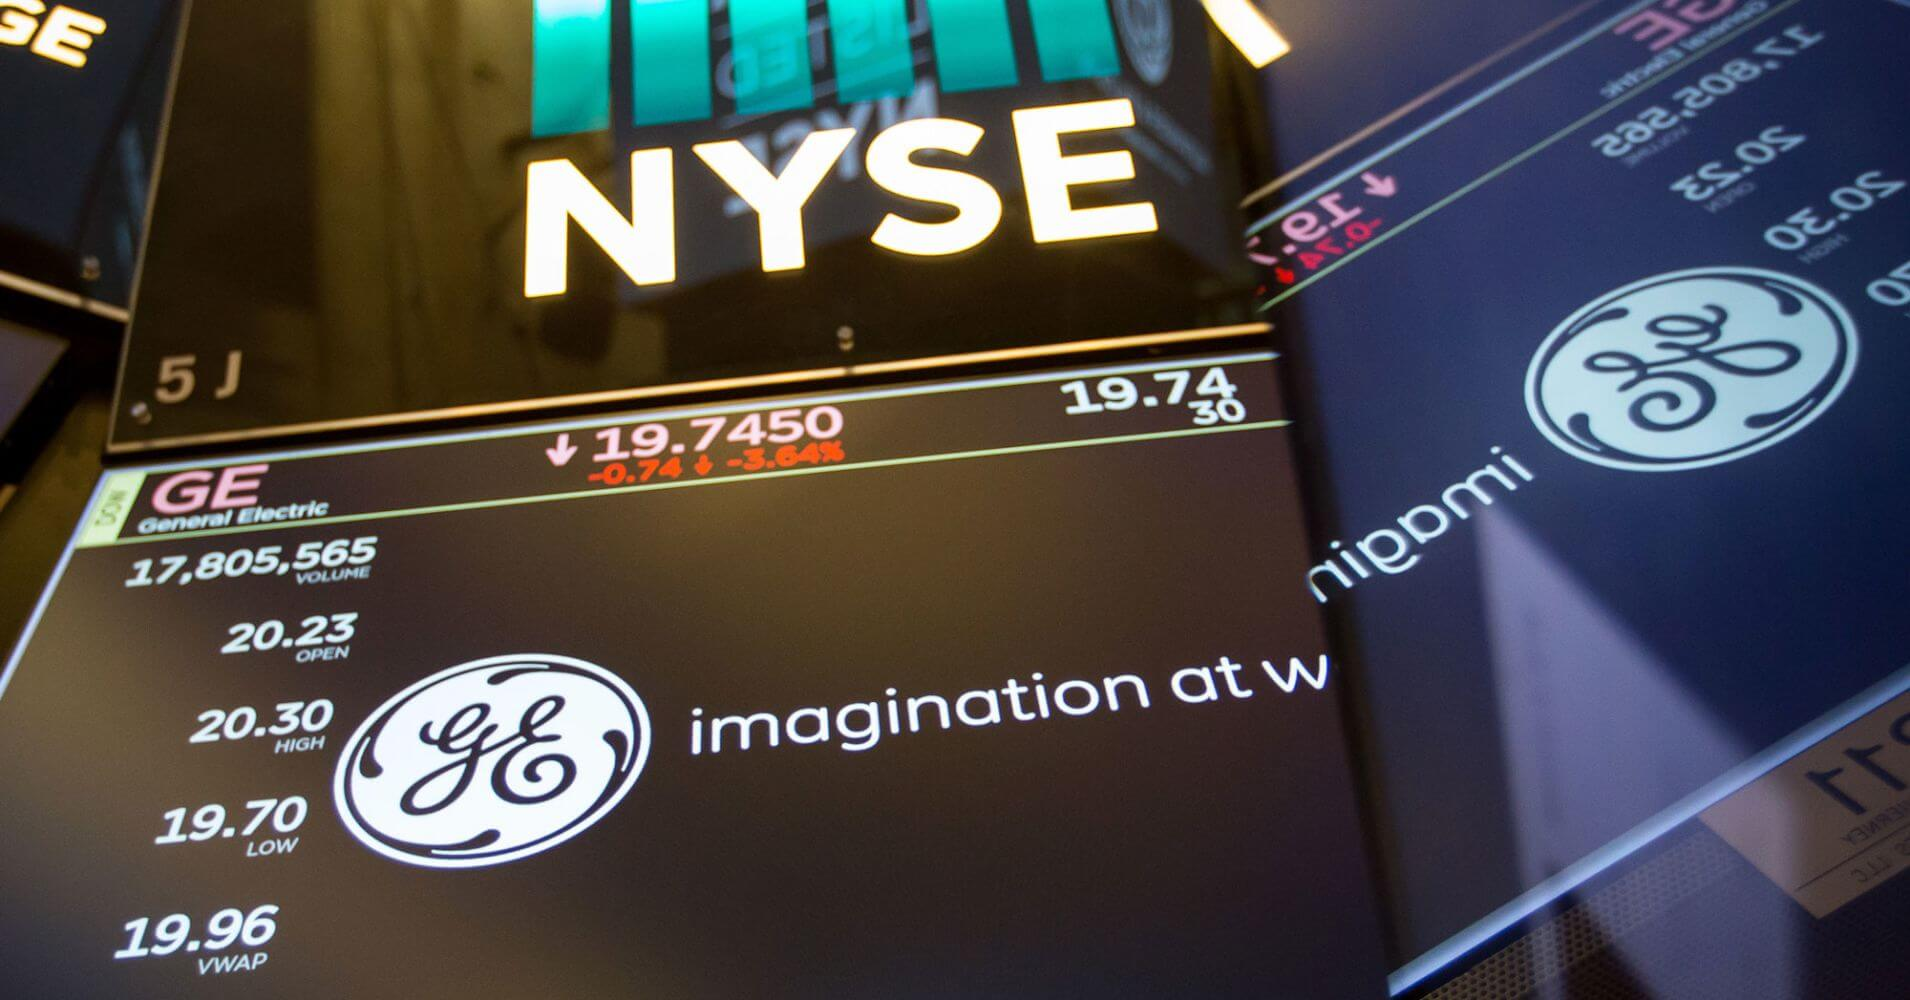 GE's Stock Market Events